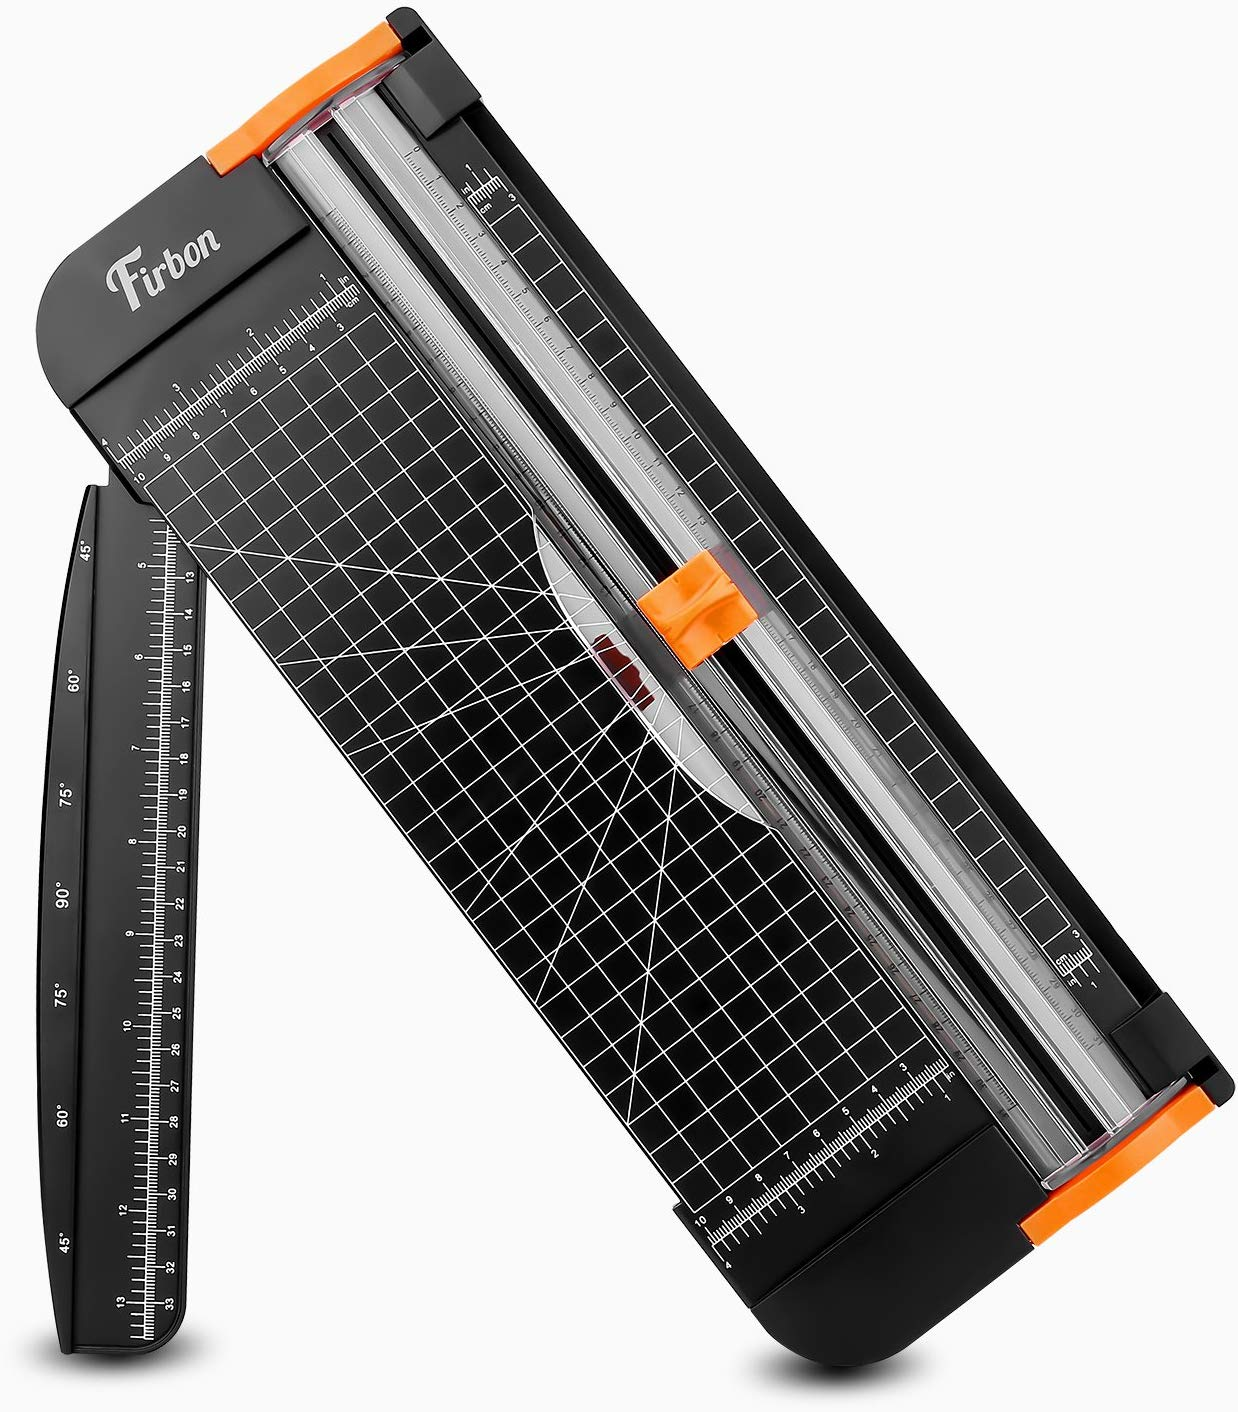 Paper Trimmer, 12 inch for crafting & cutting – 48% off! Only $5.71 on Amazon